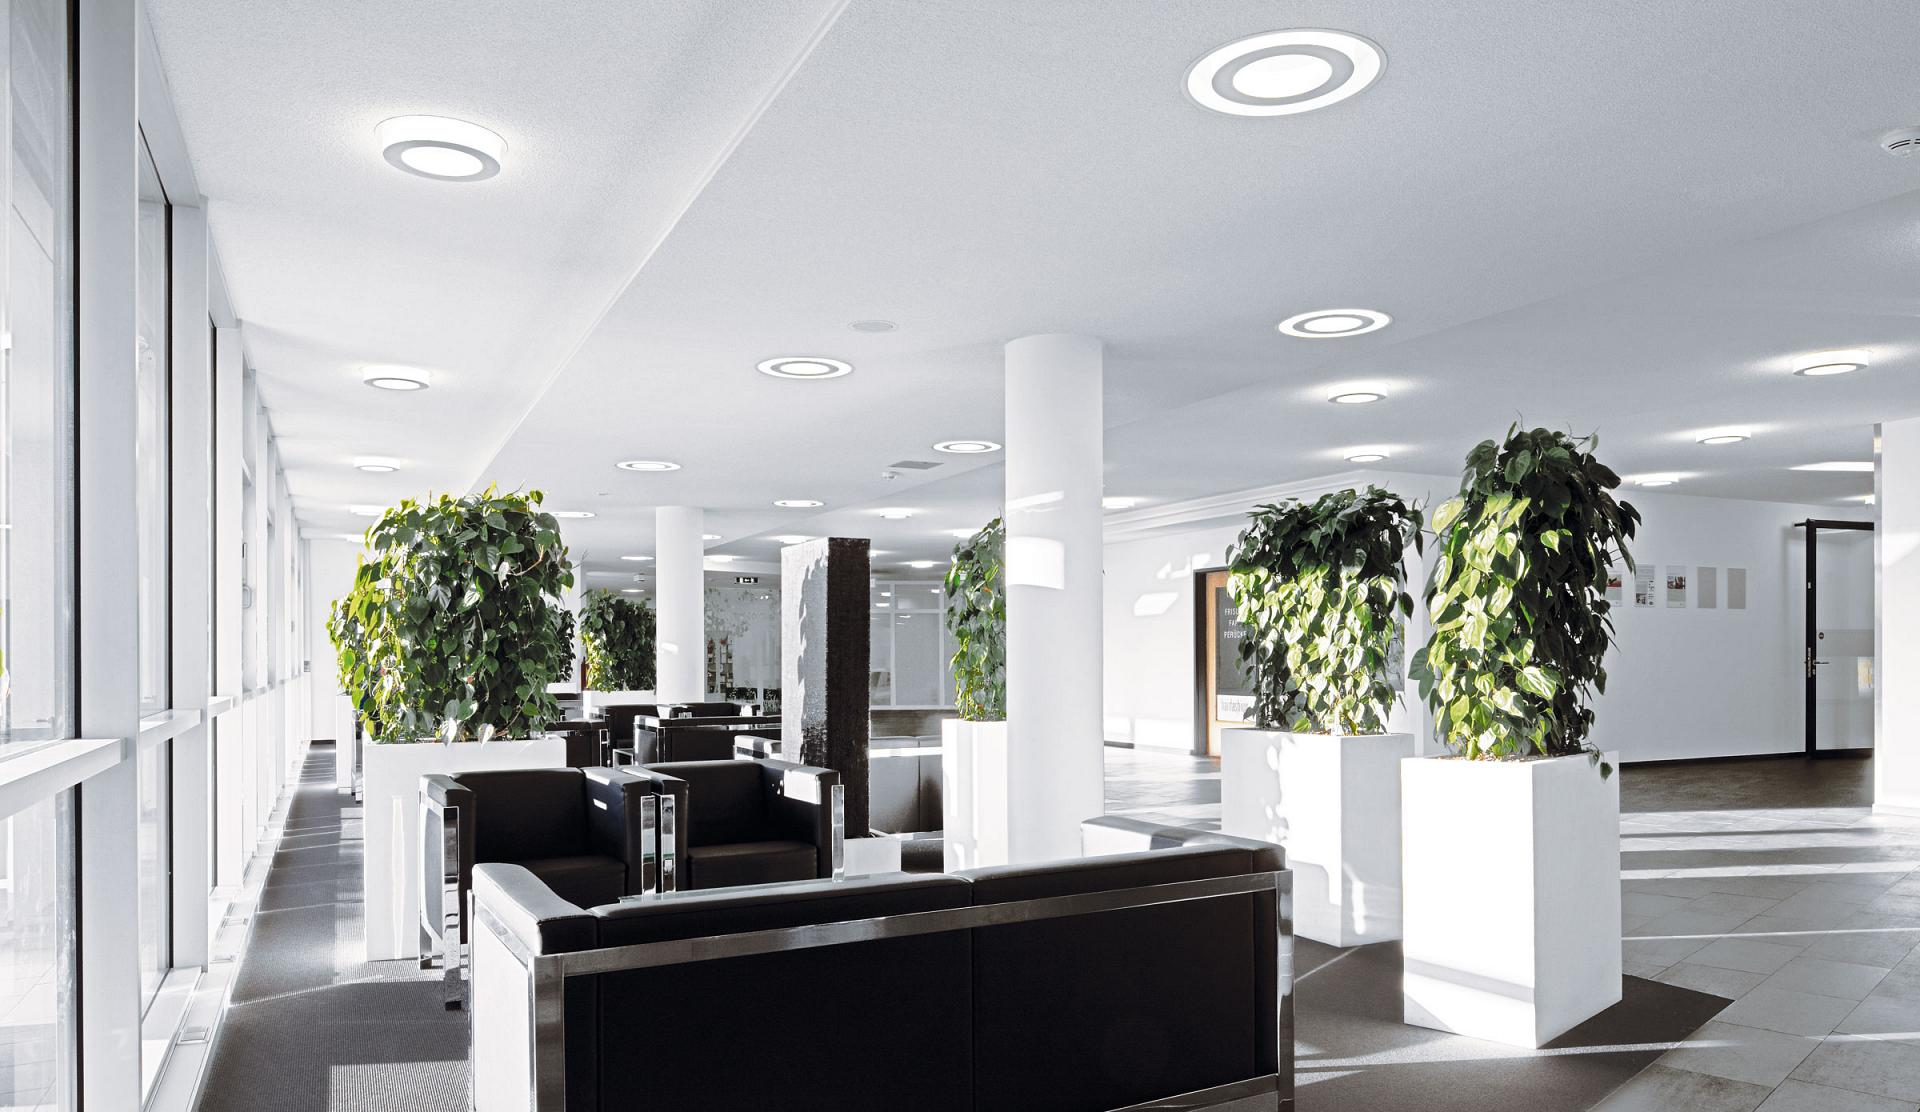 Lighting for offices - Office - Application - TRILUX Simplify Your Light